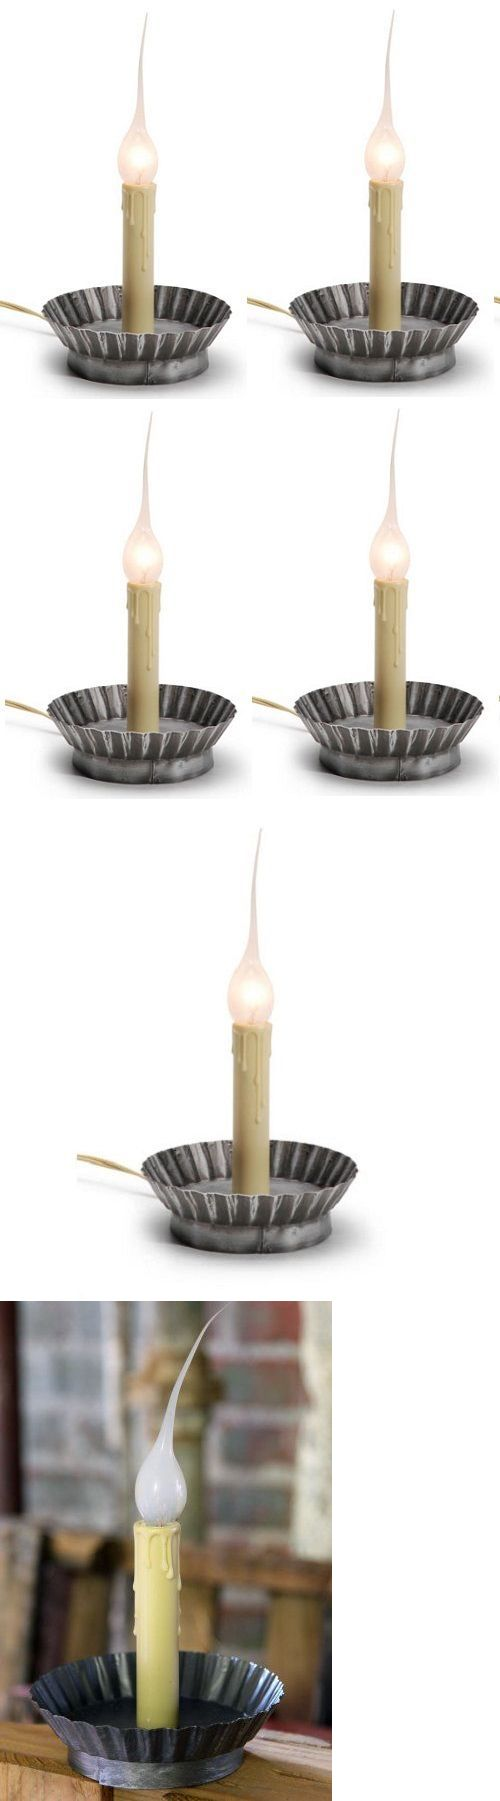 Candles and Candle Accessories 168138: (4) Ea Darice 6203-40 4.5 Electric Window Candle Lamps W Pie Tin Base -> BUY IT NOW ONLY: $39.97 on eBay!